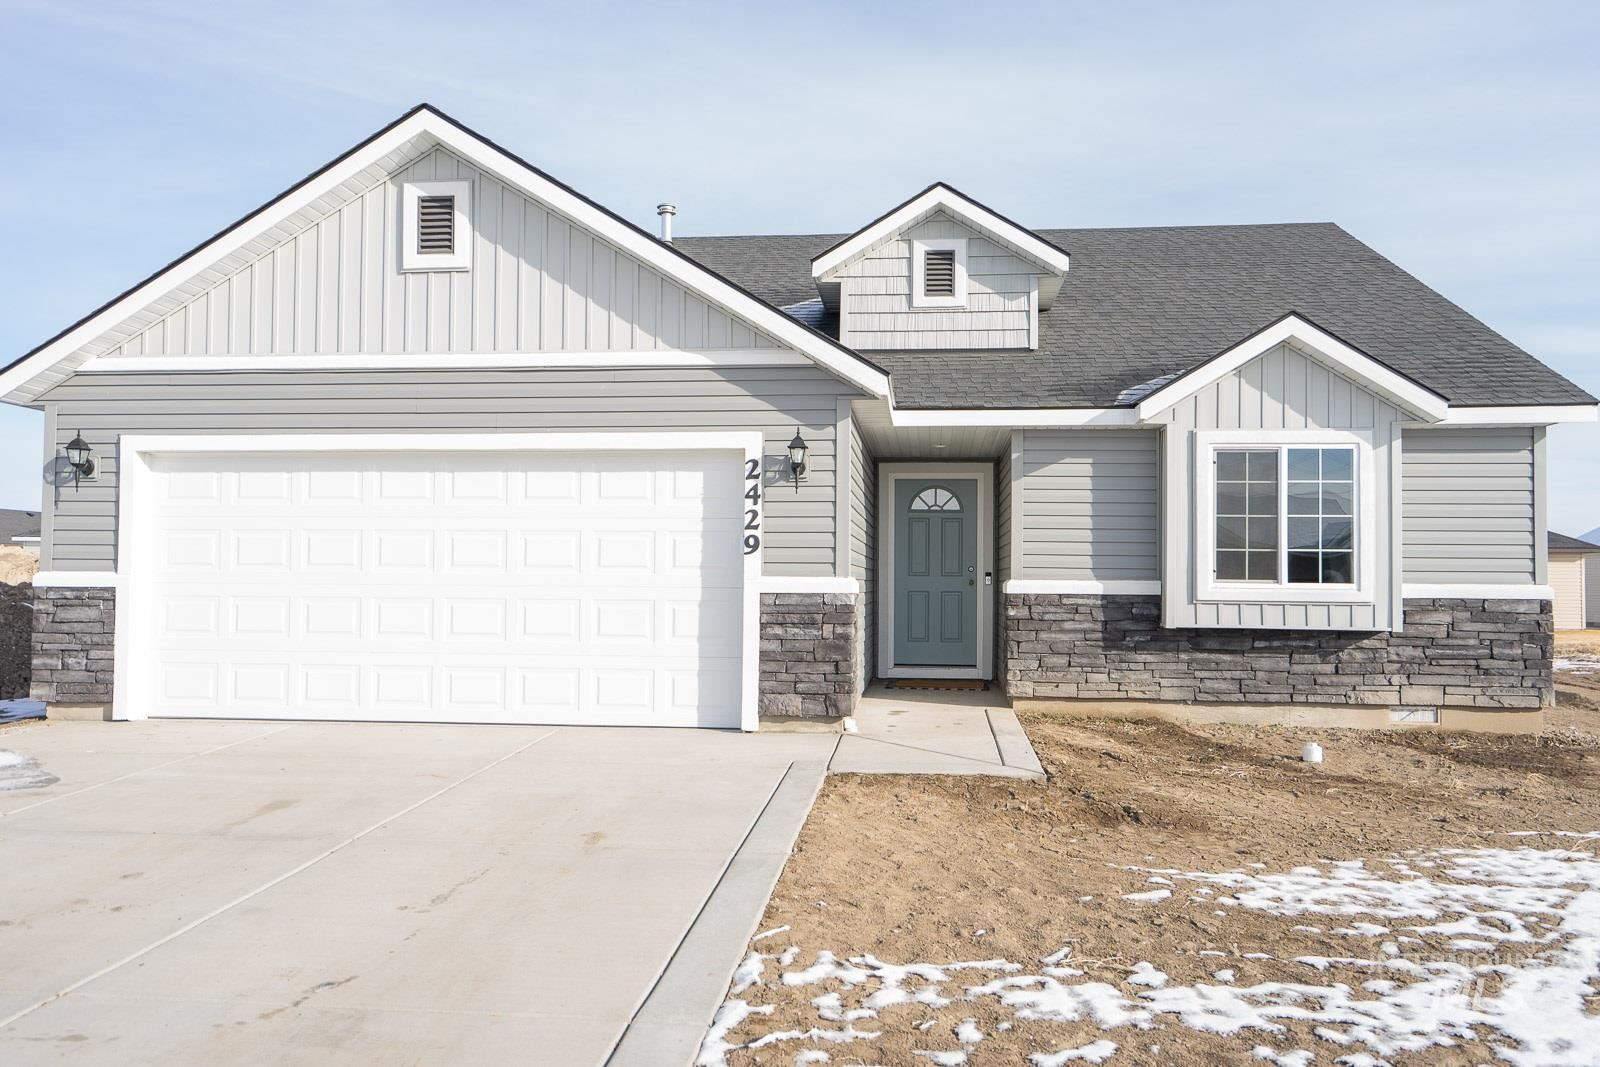 Photo of 2429 Great Basin Way, Burley, ID 83318 (MLS # 98791773)